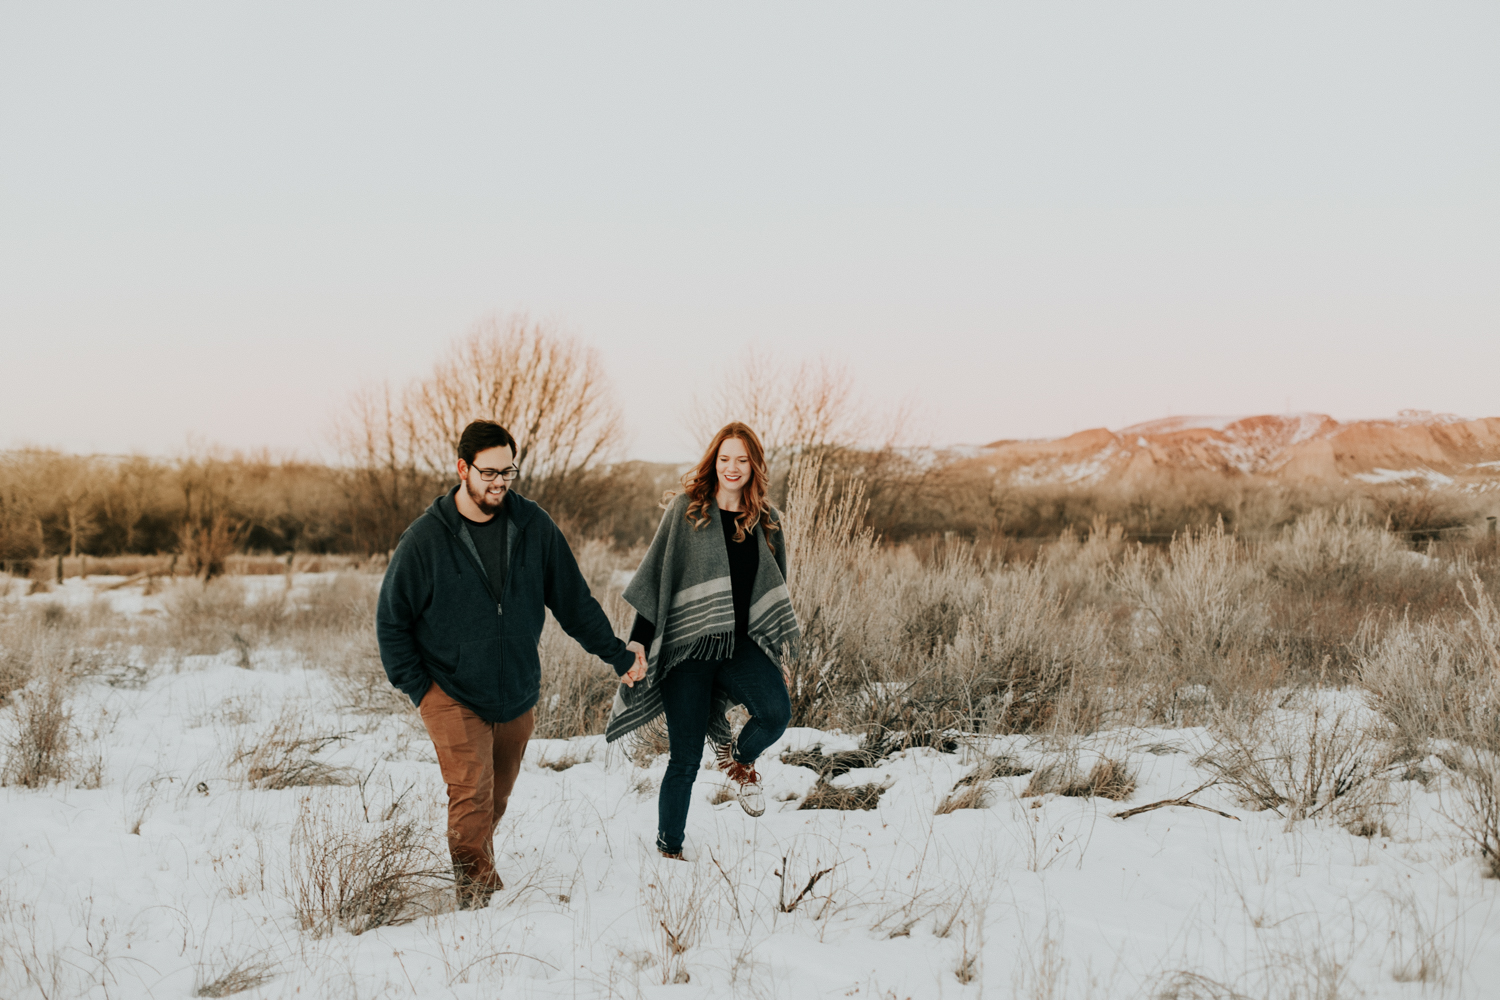 lethbridge-photography-love-and-be-loved-photographer-dan-tynnea-engagement-picture-image-photo-68.jpg